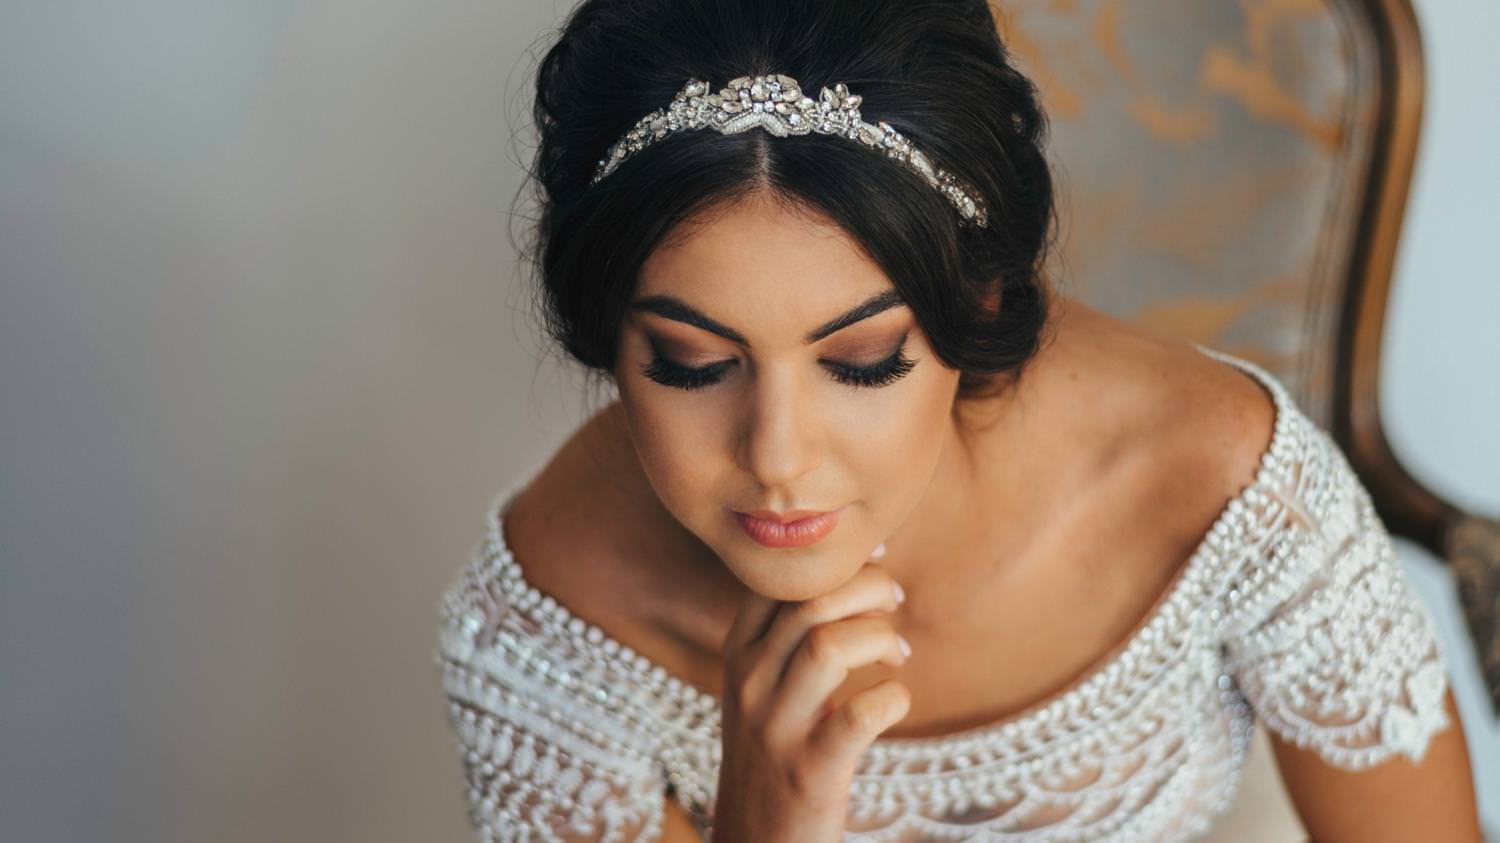 Bride face with tiara